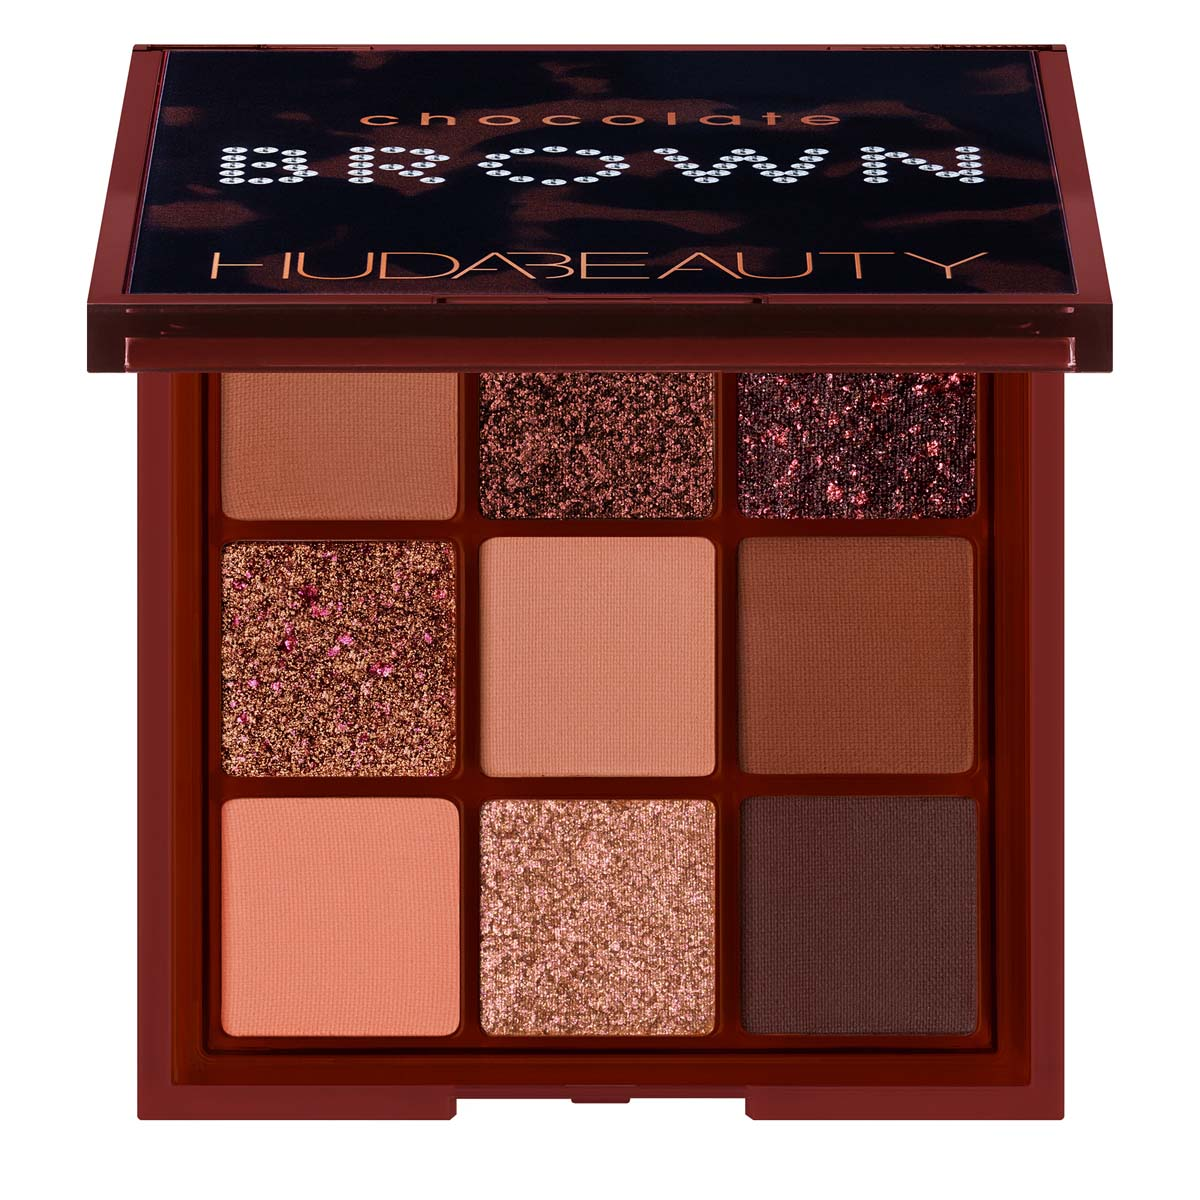 Huda Beauty Brown Obsessions Eyeshadow Palette Chocolate 7.5g